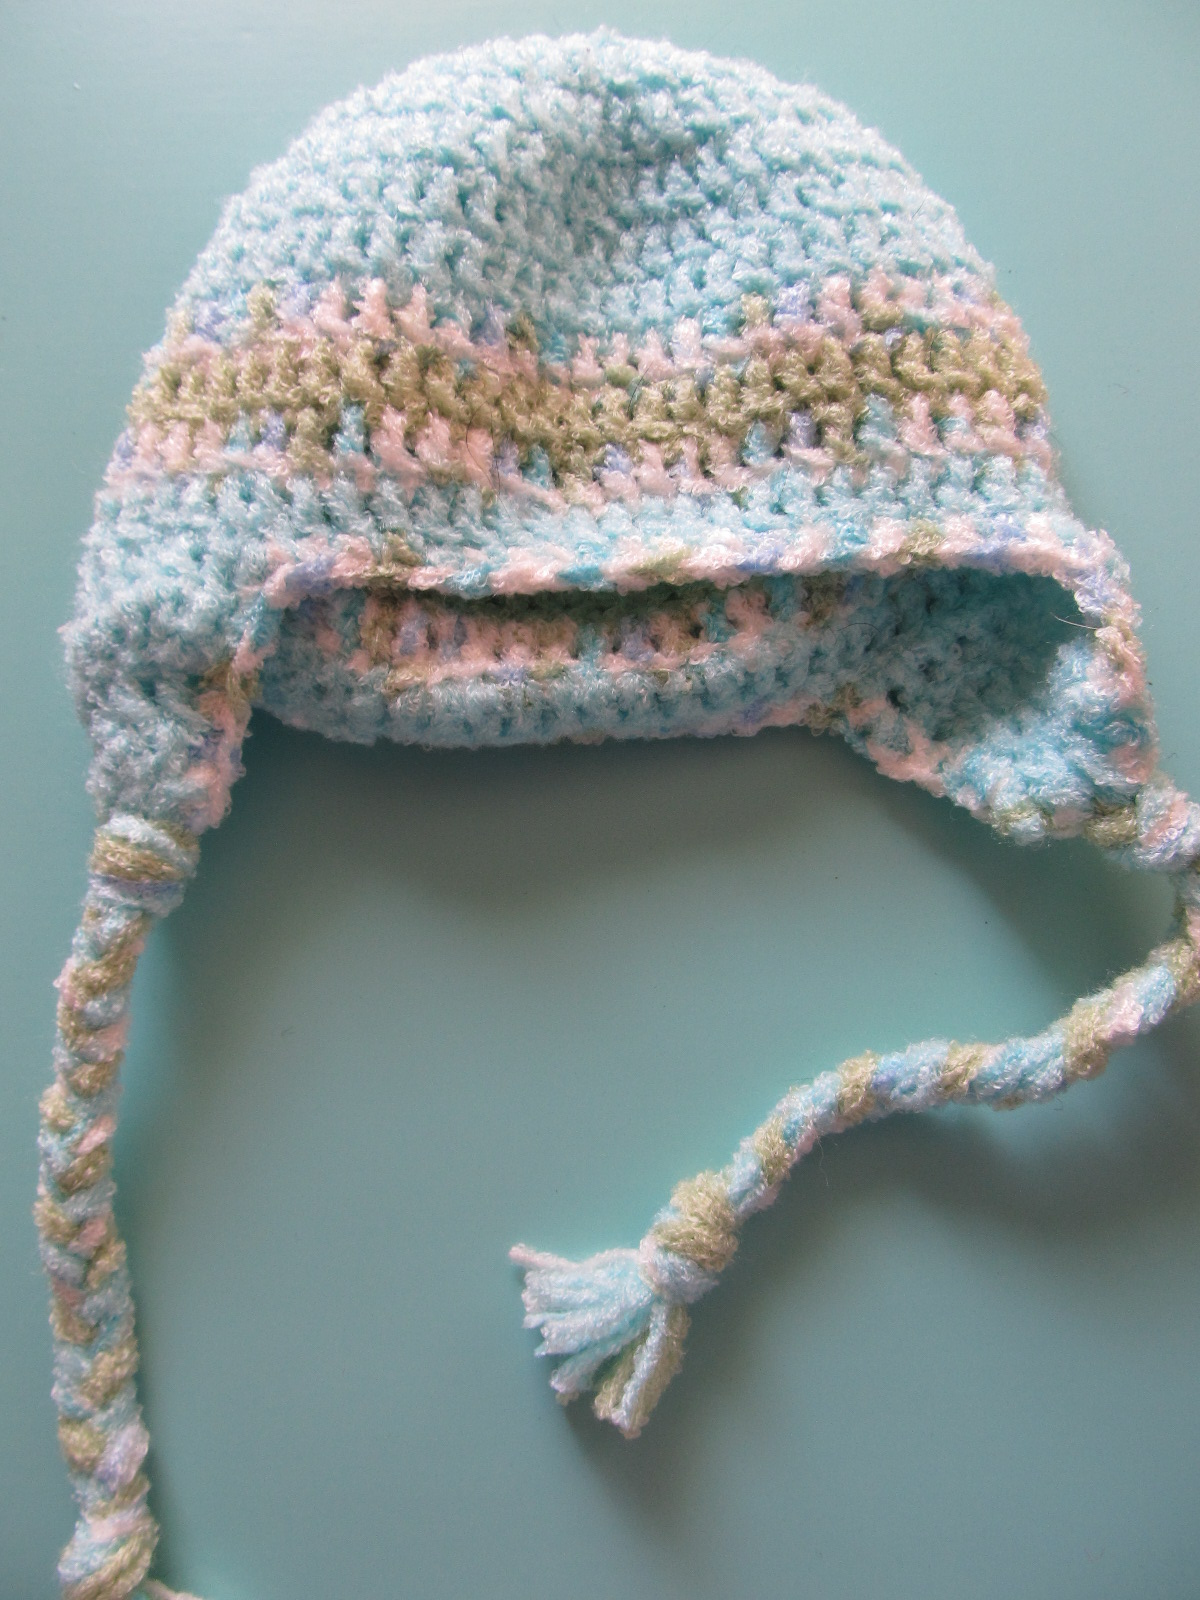 Newborn Crochet Hat Pattern With Ear Flaps : Simply Crochet and Other Crafts: Baby Hat with Ear Flaps